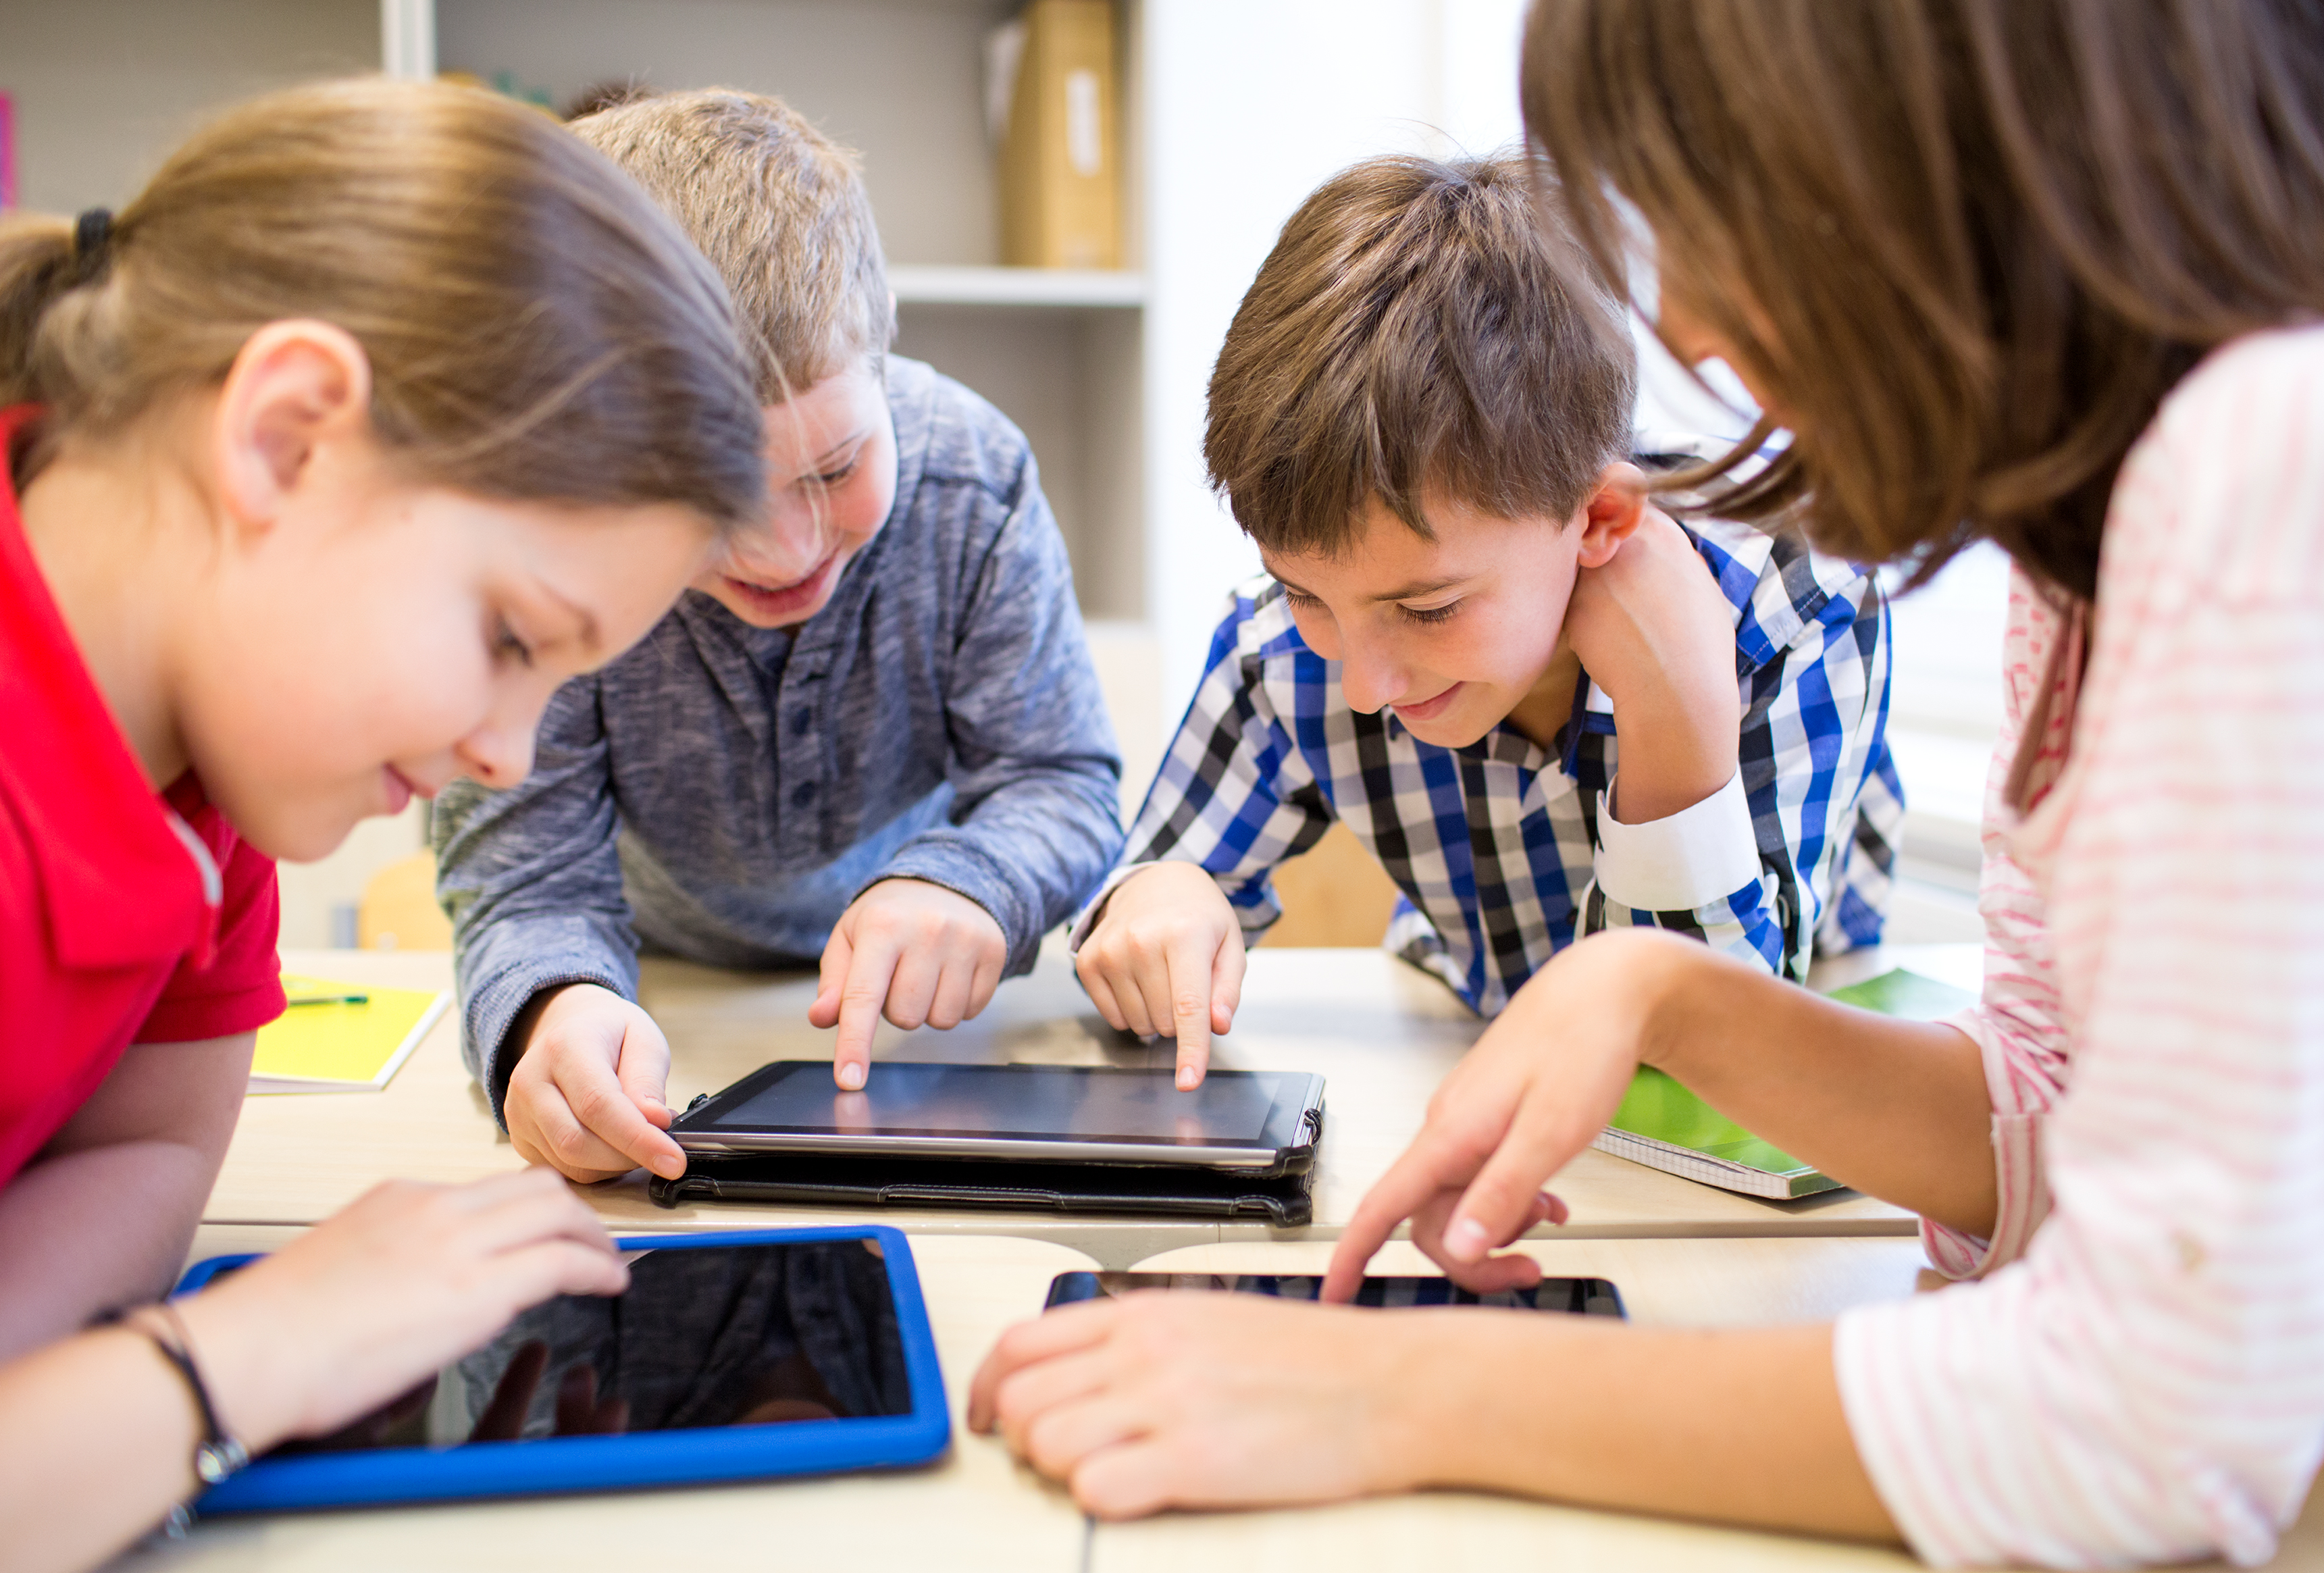 Top 5 Apps that will Keep Your Kids Entertained [Infographic]